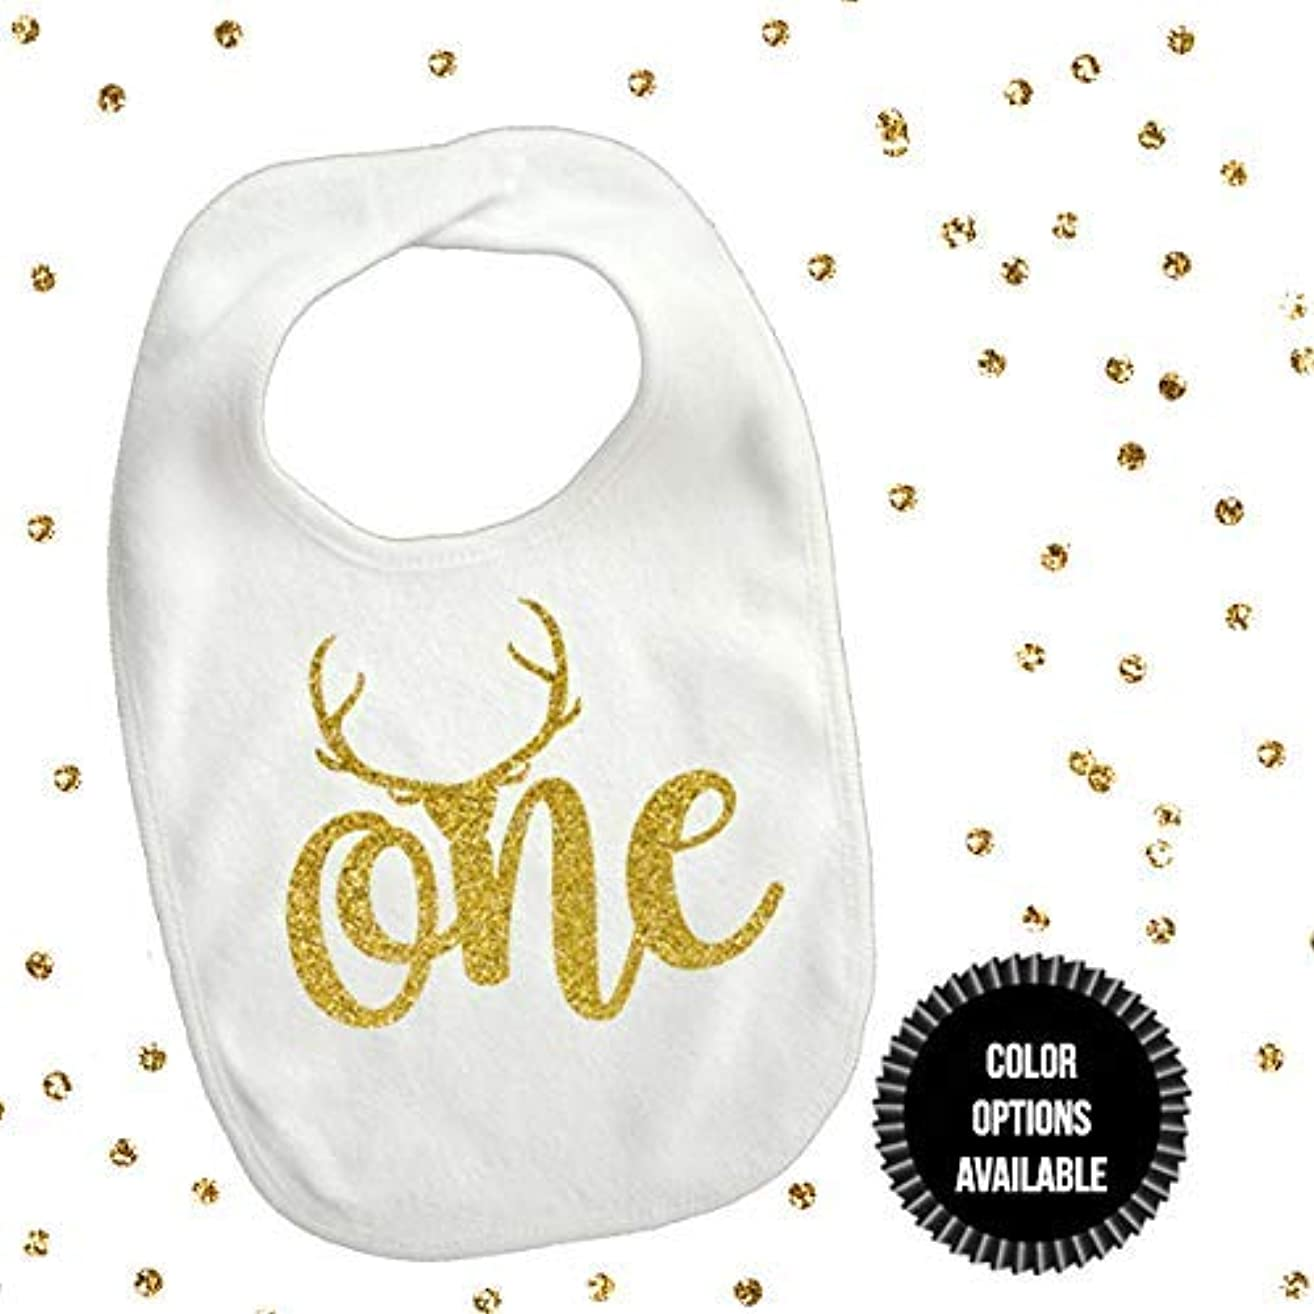 1 piece one deer antler bib toddler boy girl for first birthday gift cake smash photo prop boho theme